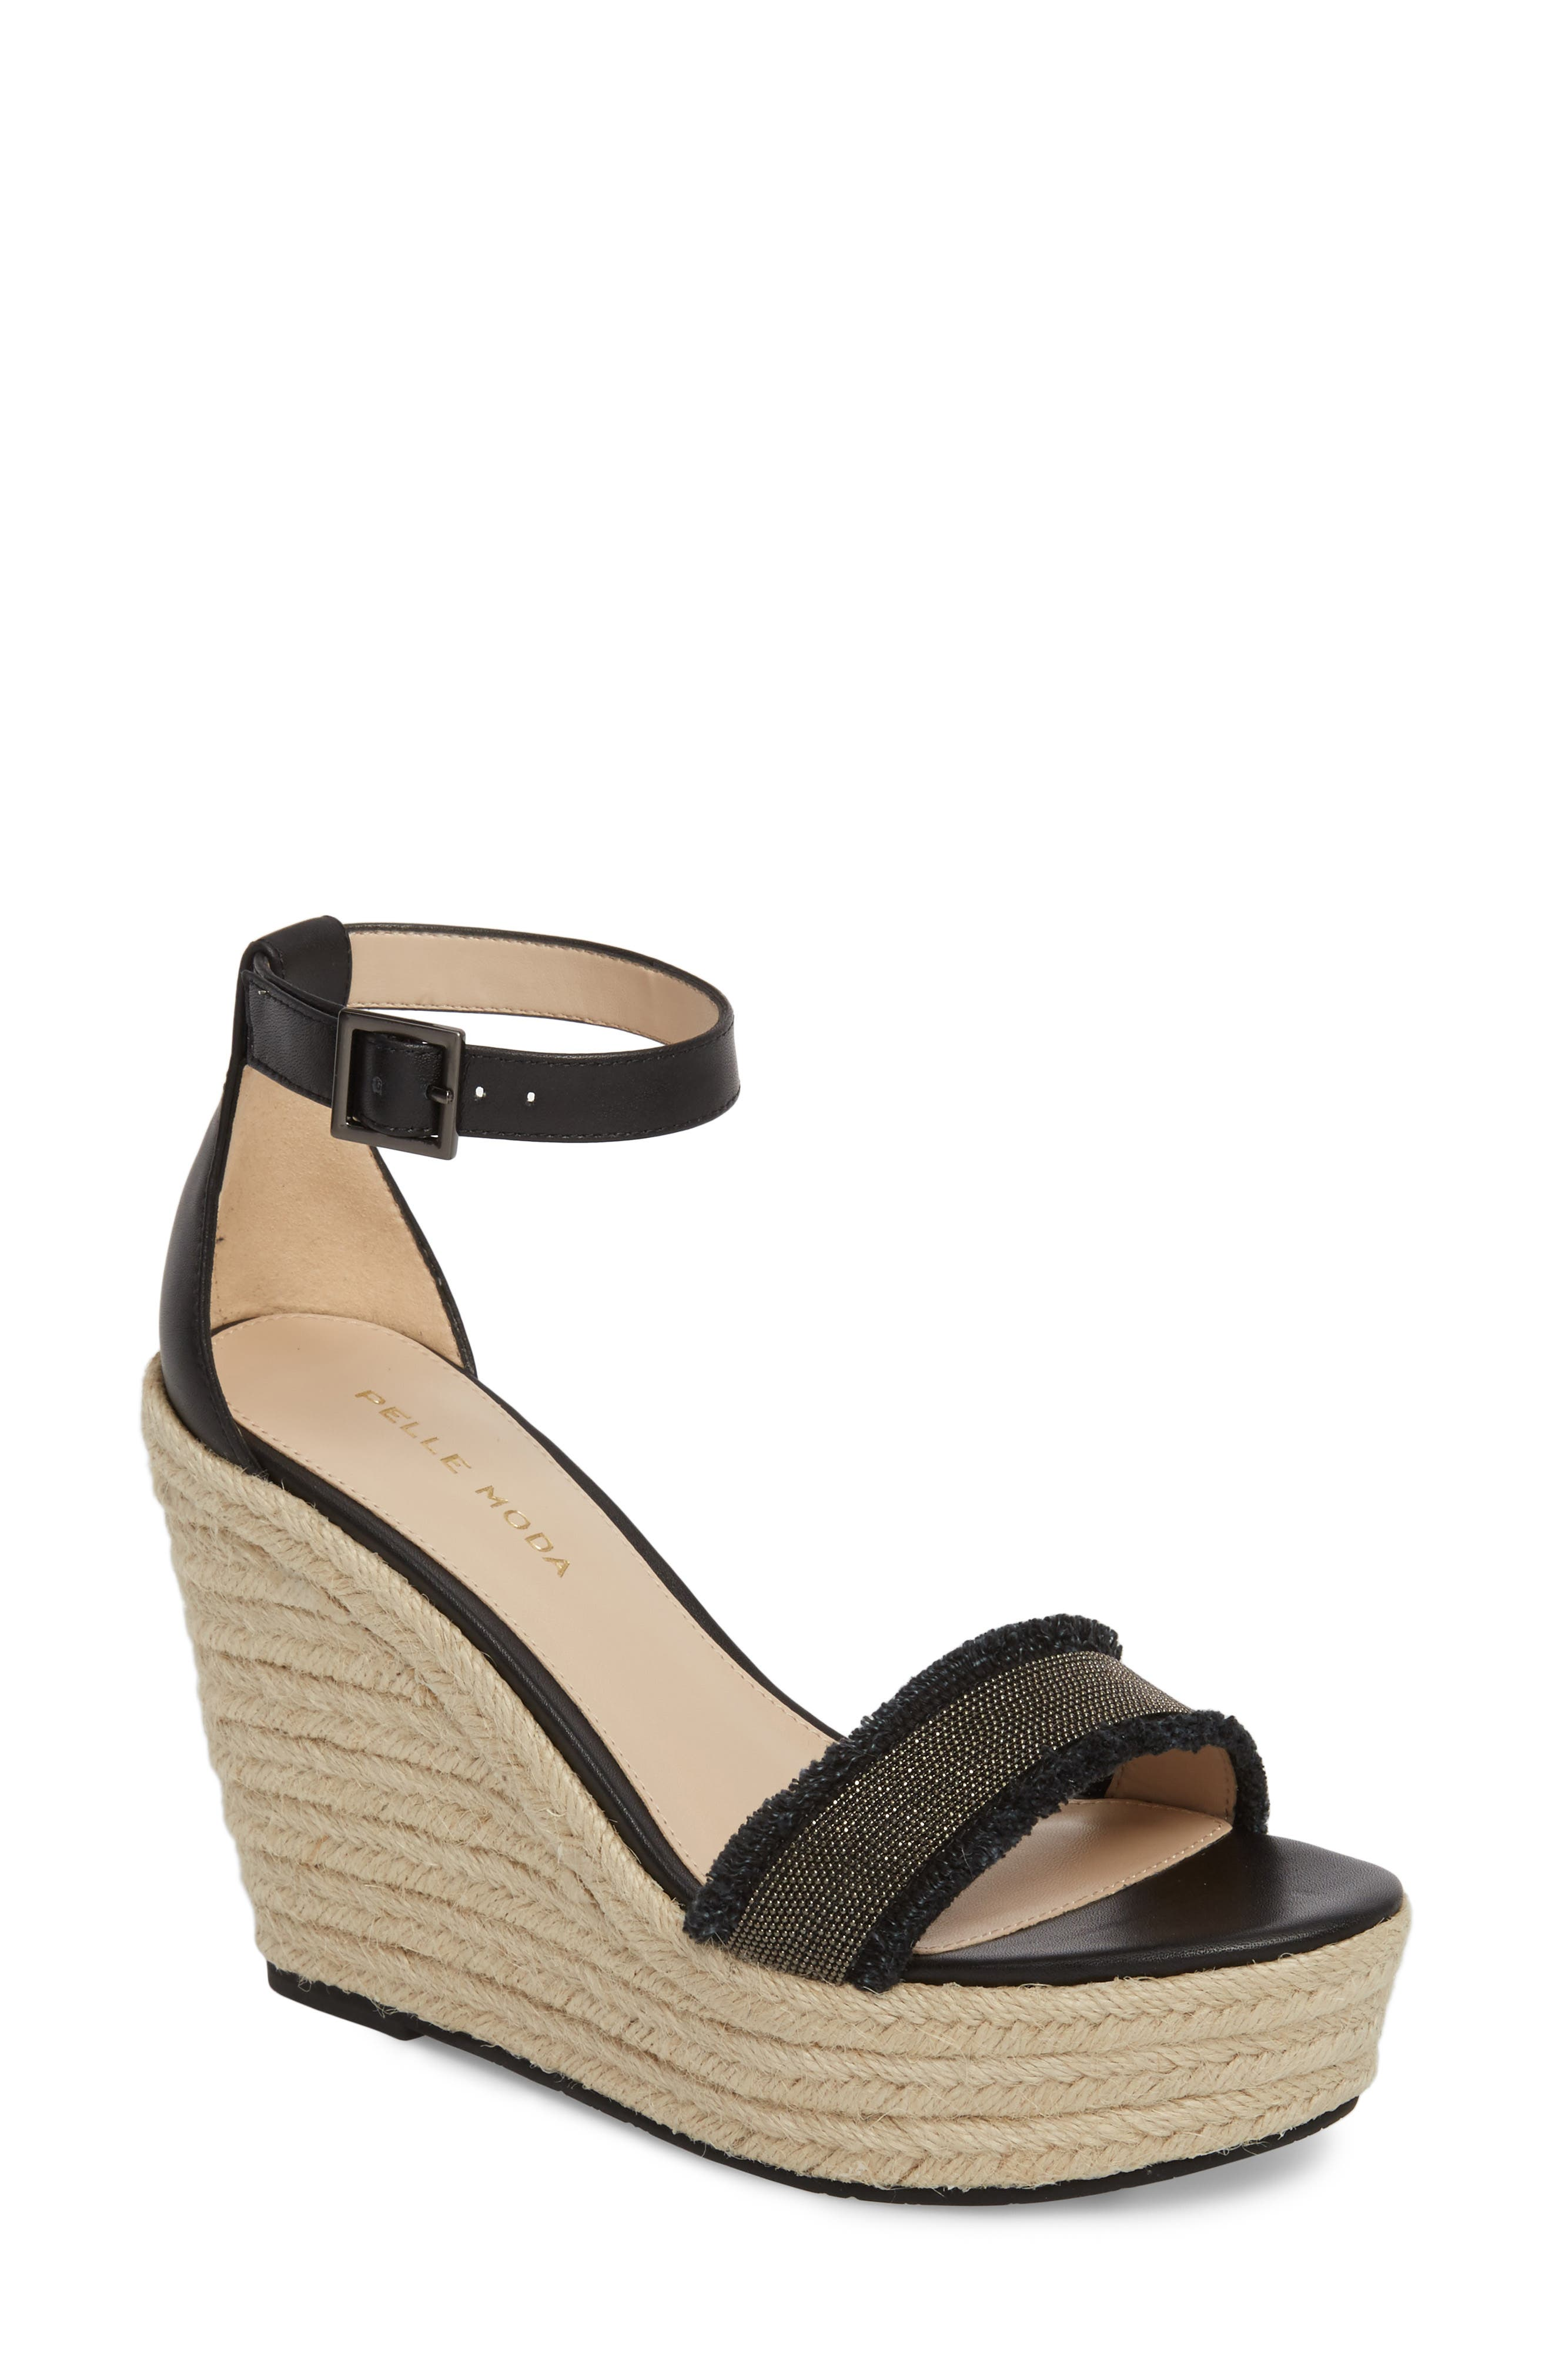 Radley Espadrille Wedge Sandal,                         Main,                         color, BLACK LEATHER